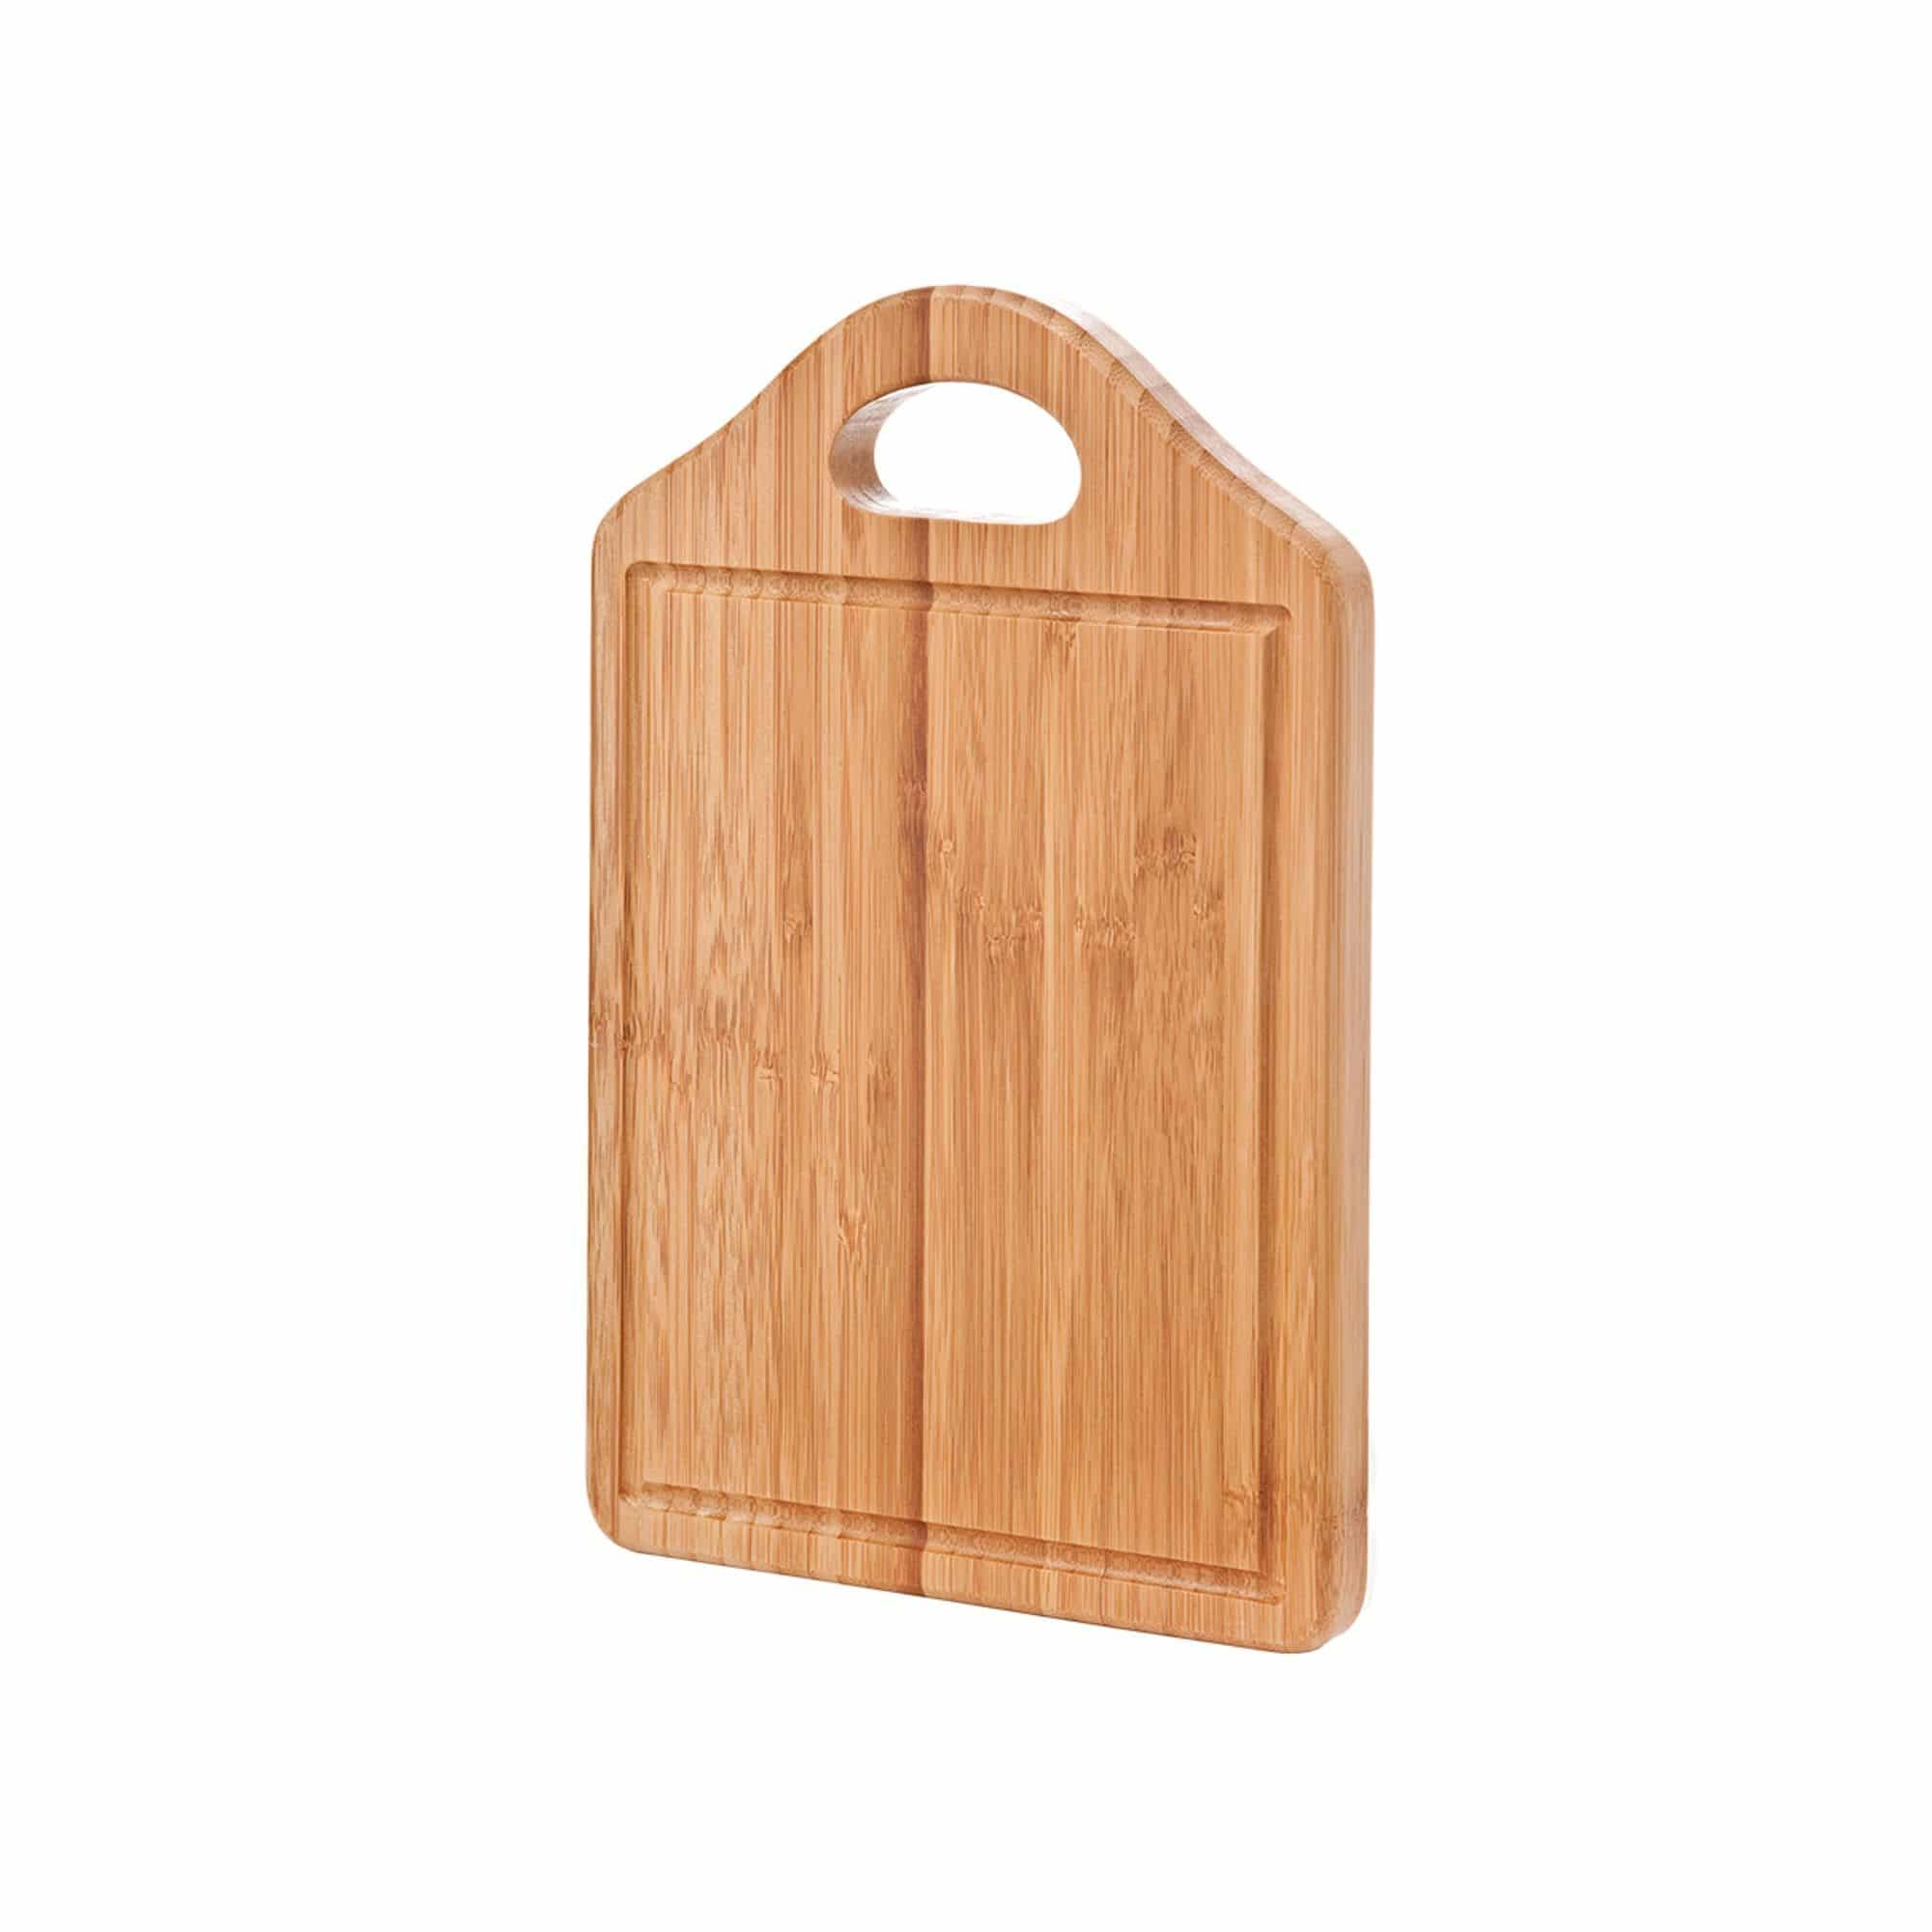 Bamboo Cheese or Carving Board with handle